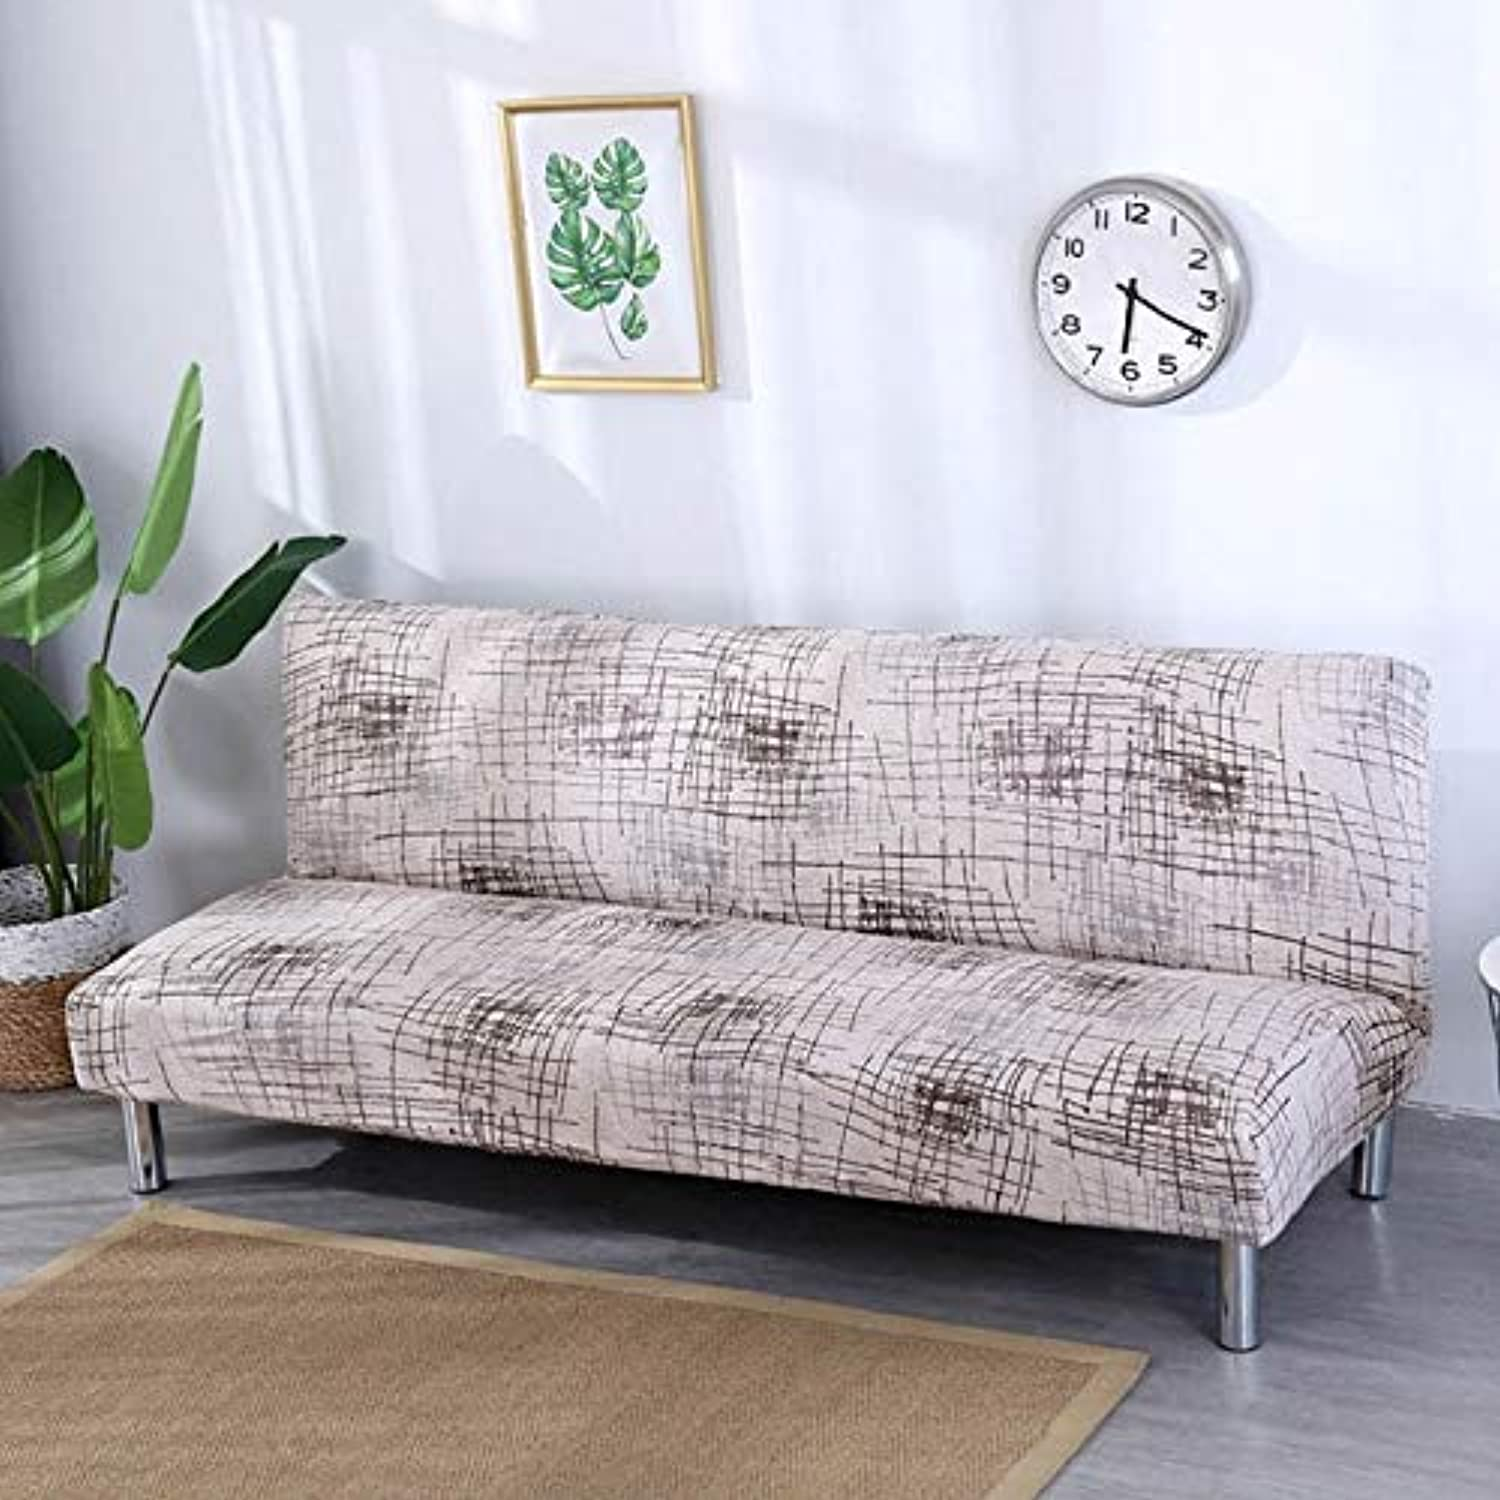 Geometric Printing Sofa Bed Cover All-Inclusive Tight Wrap Folding Couch Case Sofa Length Without Armrest Between 165cm to 185cm   color 17, 165cm to 185cm